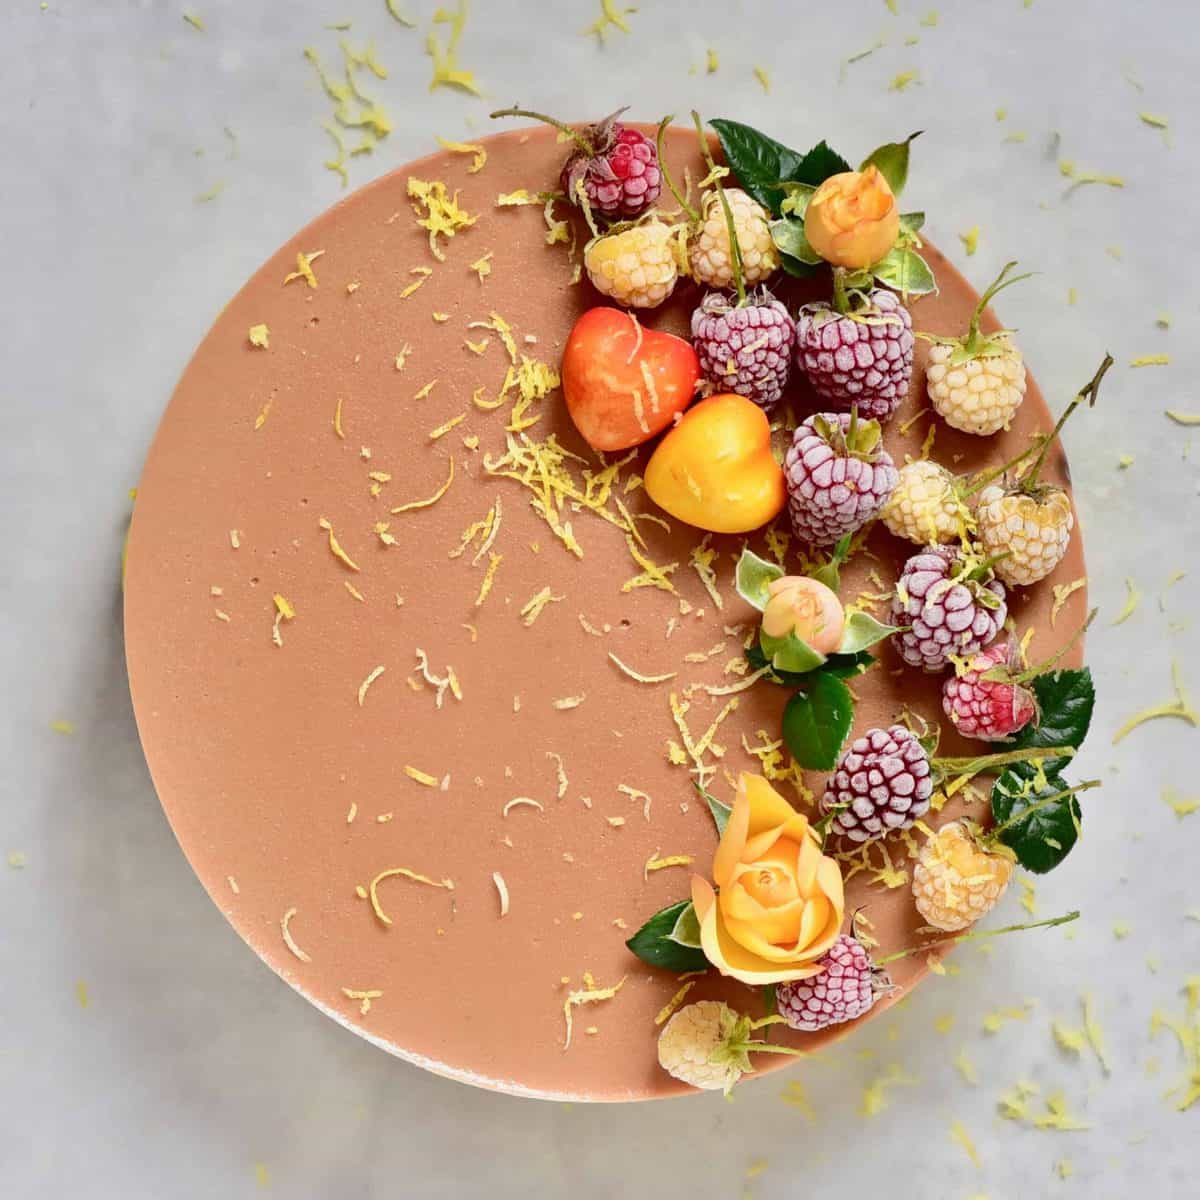 Two-layer Raspberry Peach & Lemonade Tart topped with frozen berries, edible flowers and lemon zest